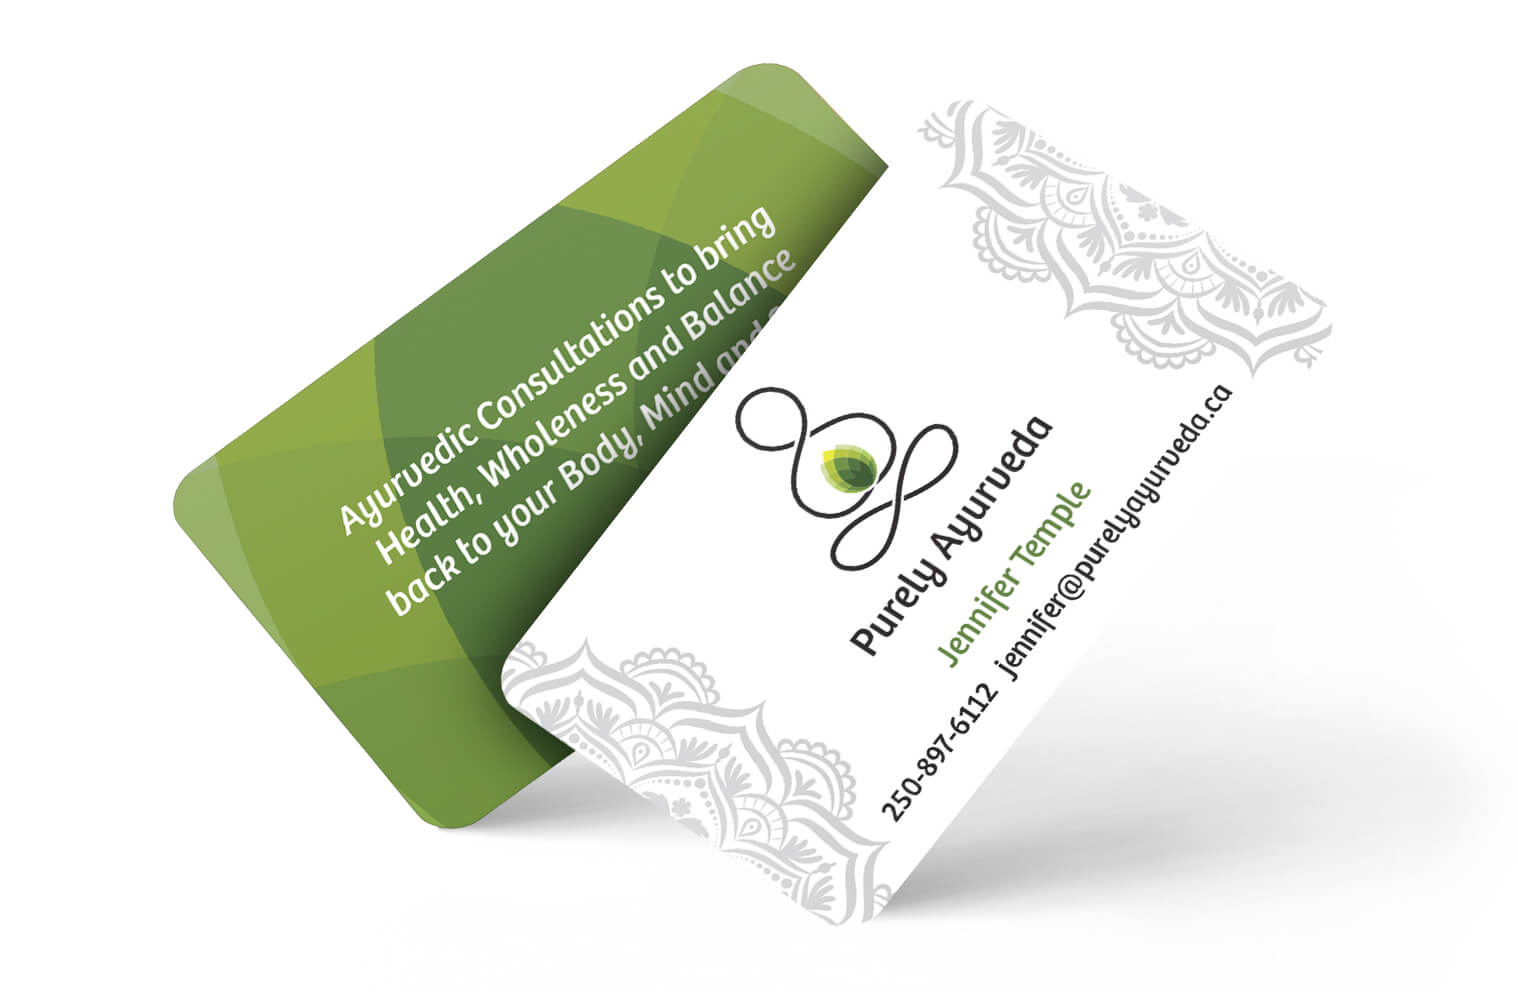 Business Card Design - Purely Ayurveda